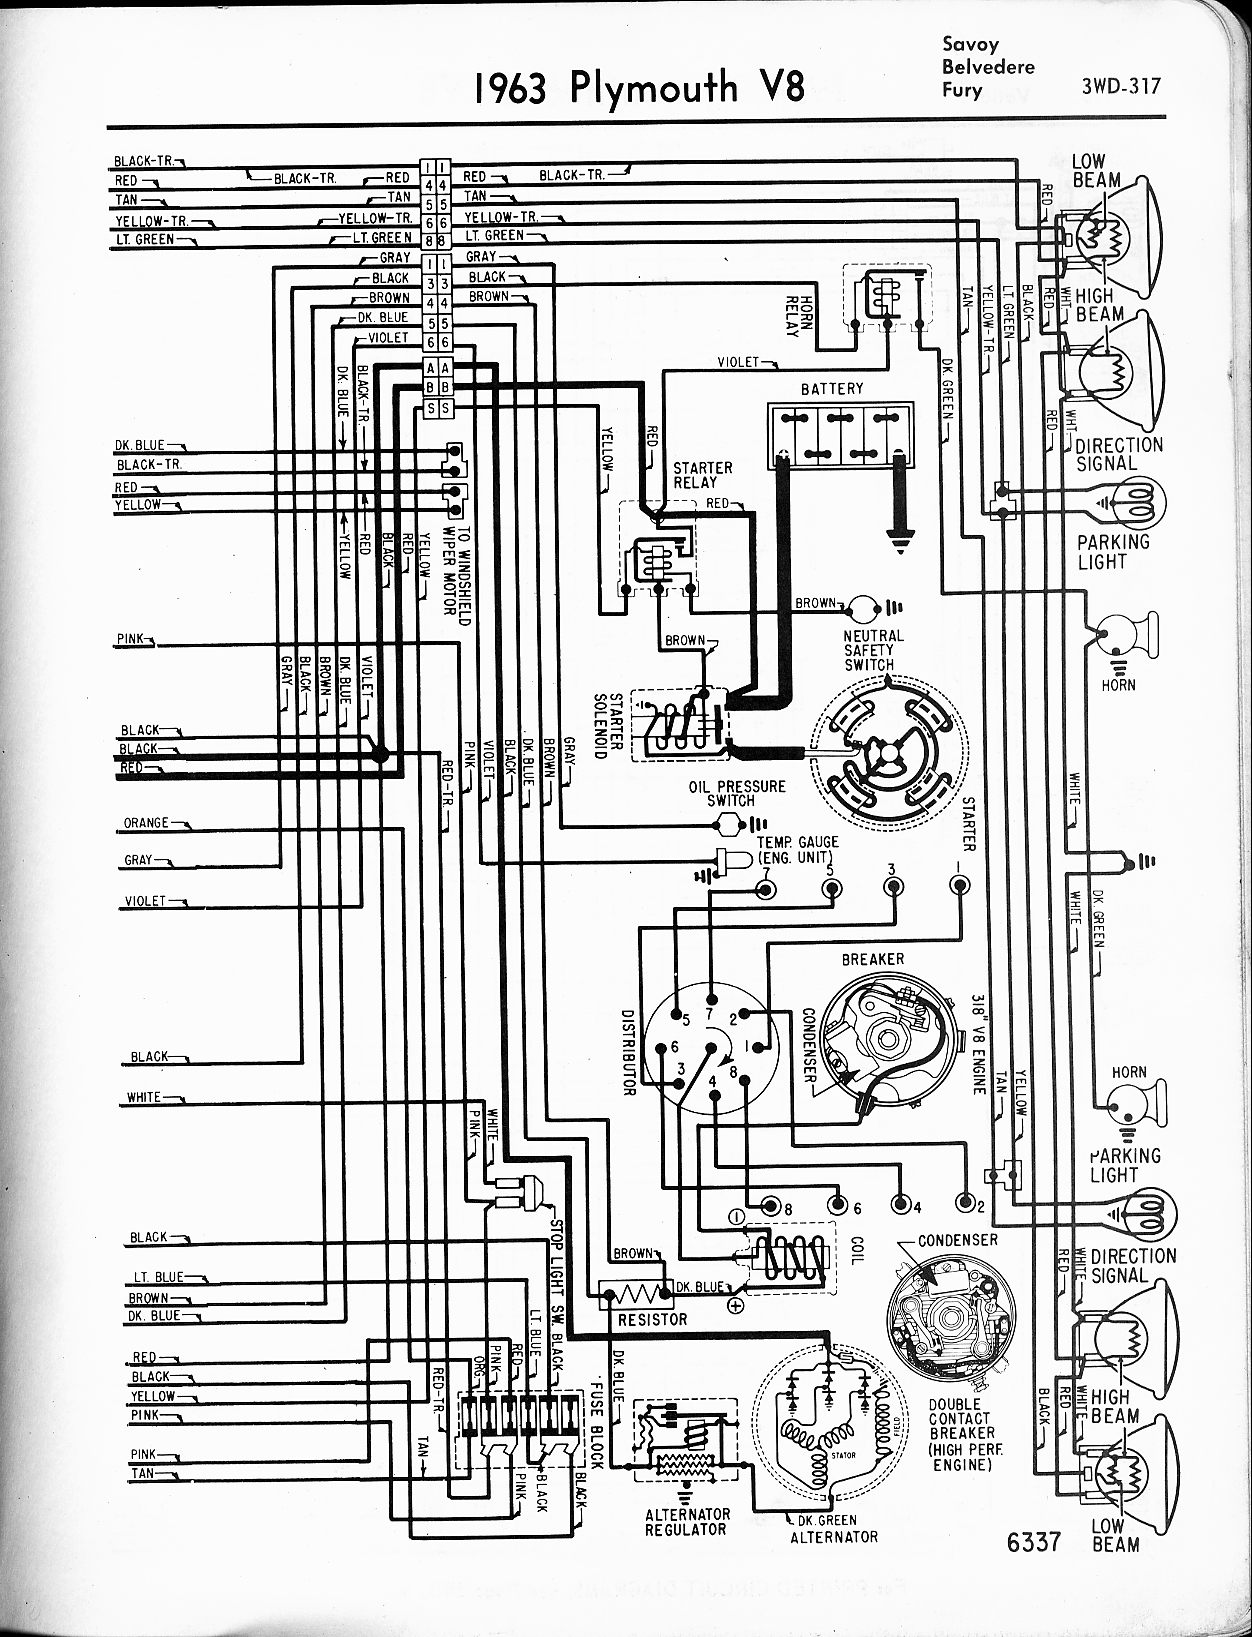 1956 1965 plymouth wiring the car manual project